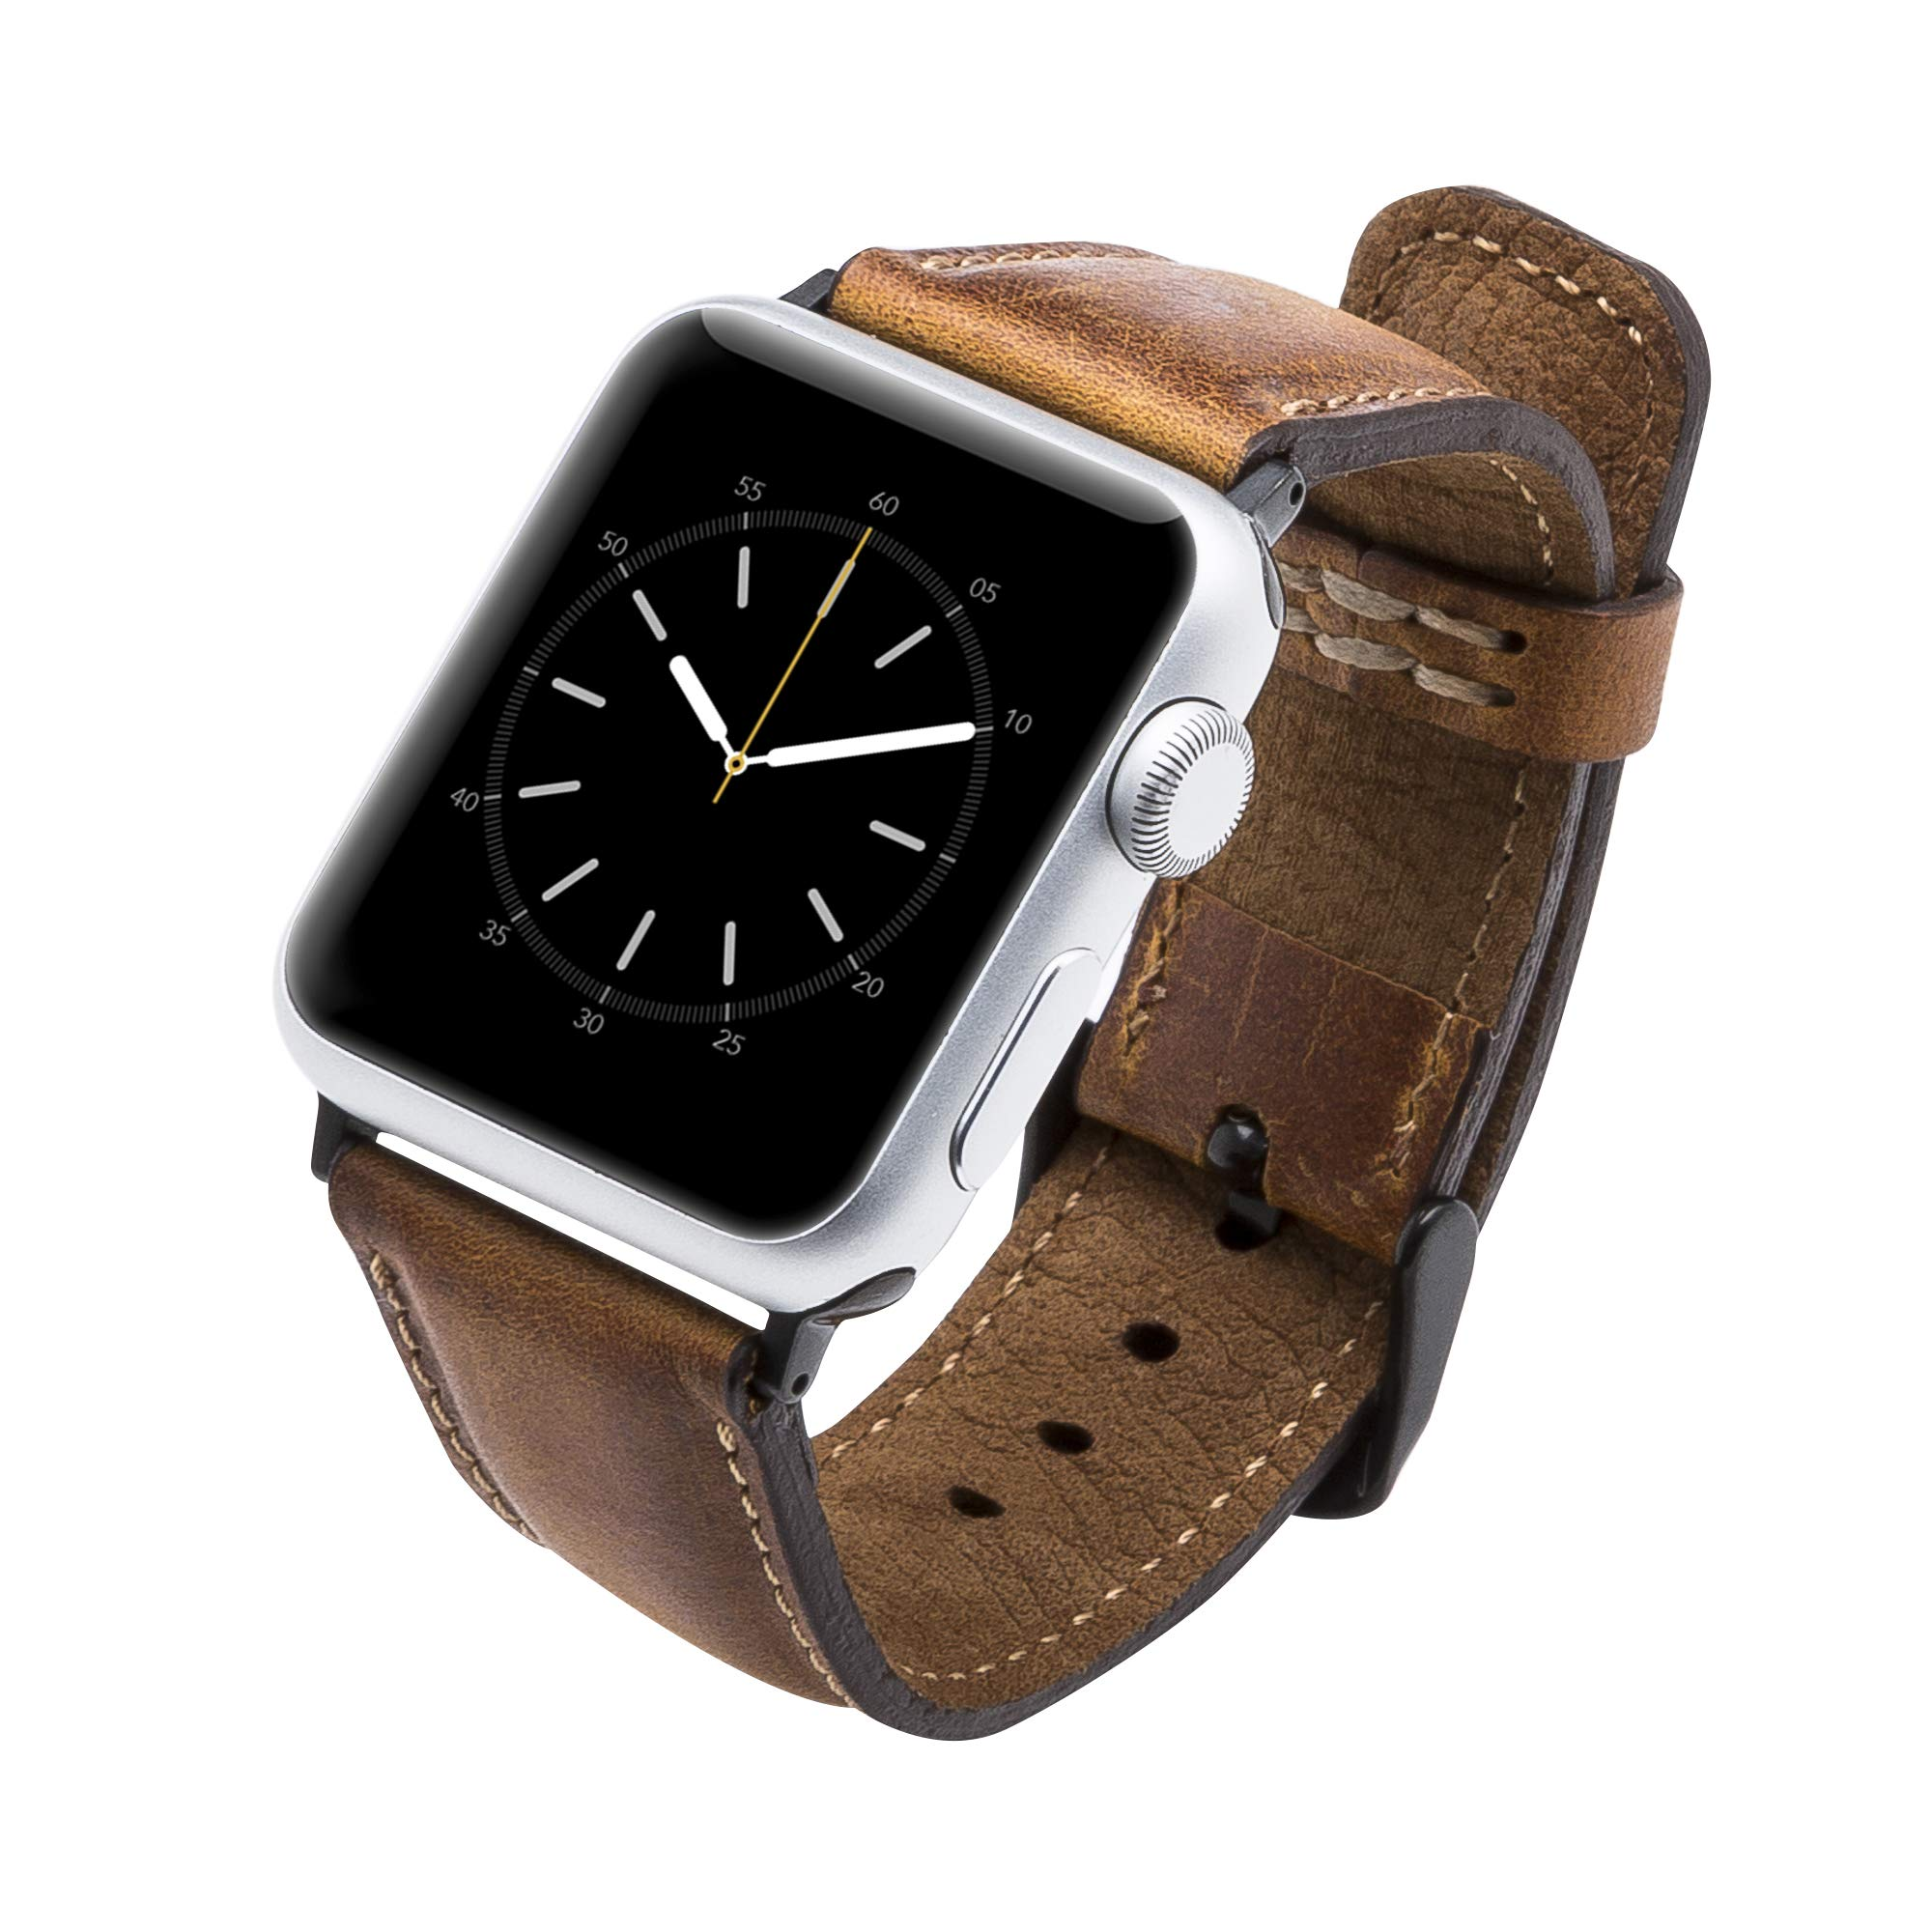 Tuscany Handmade Leather Watch Band Strap Compatible with Apple Watch 44/42/40/38 mm in All Series 1,2,3,4 with Stainless Steel Hardware (Antique Brown, 38-40mm with Black Connector&Clasp)